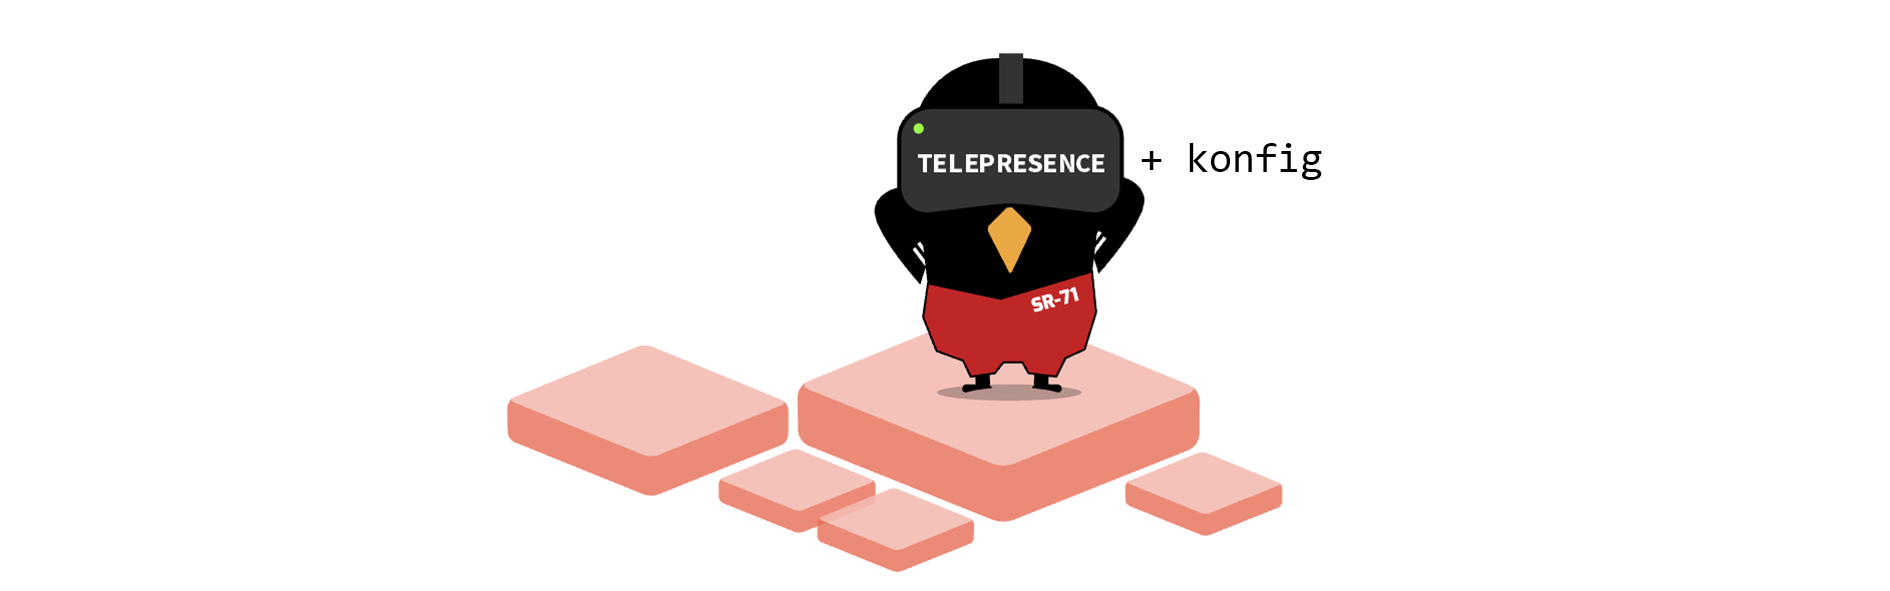 Developing Go Services For Kubernetes with Telepresence and konfig